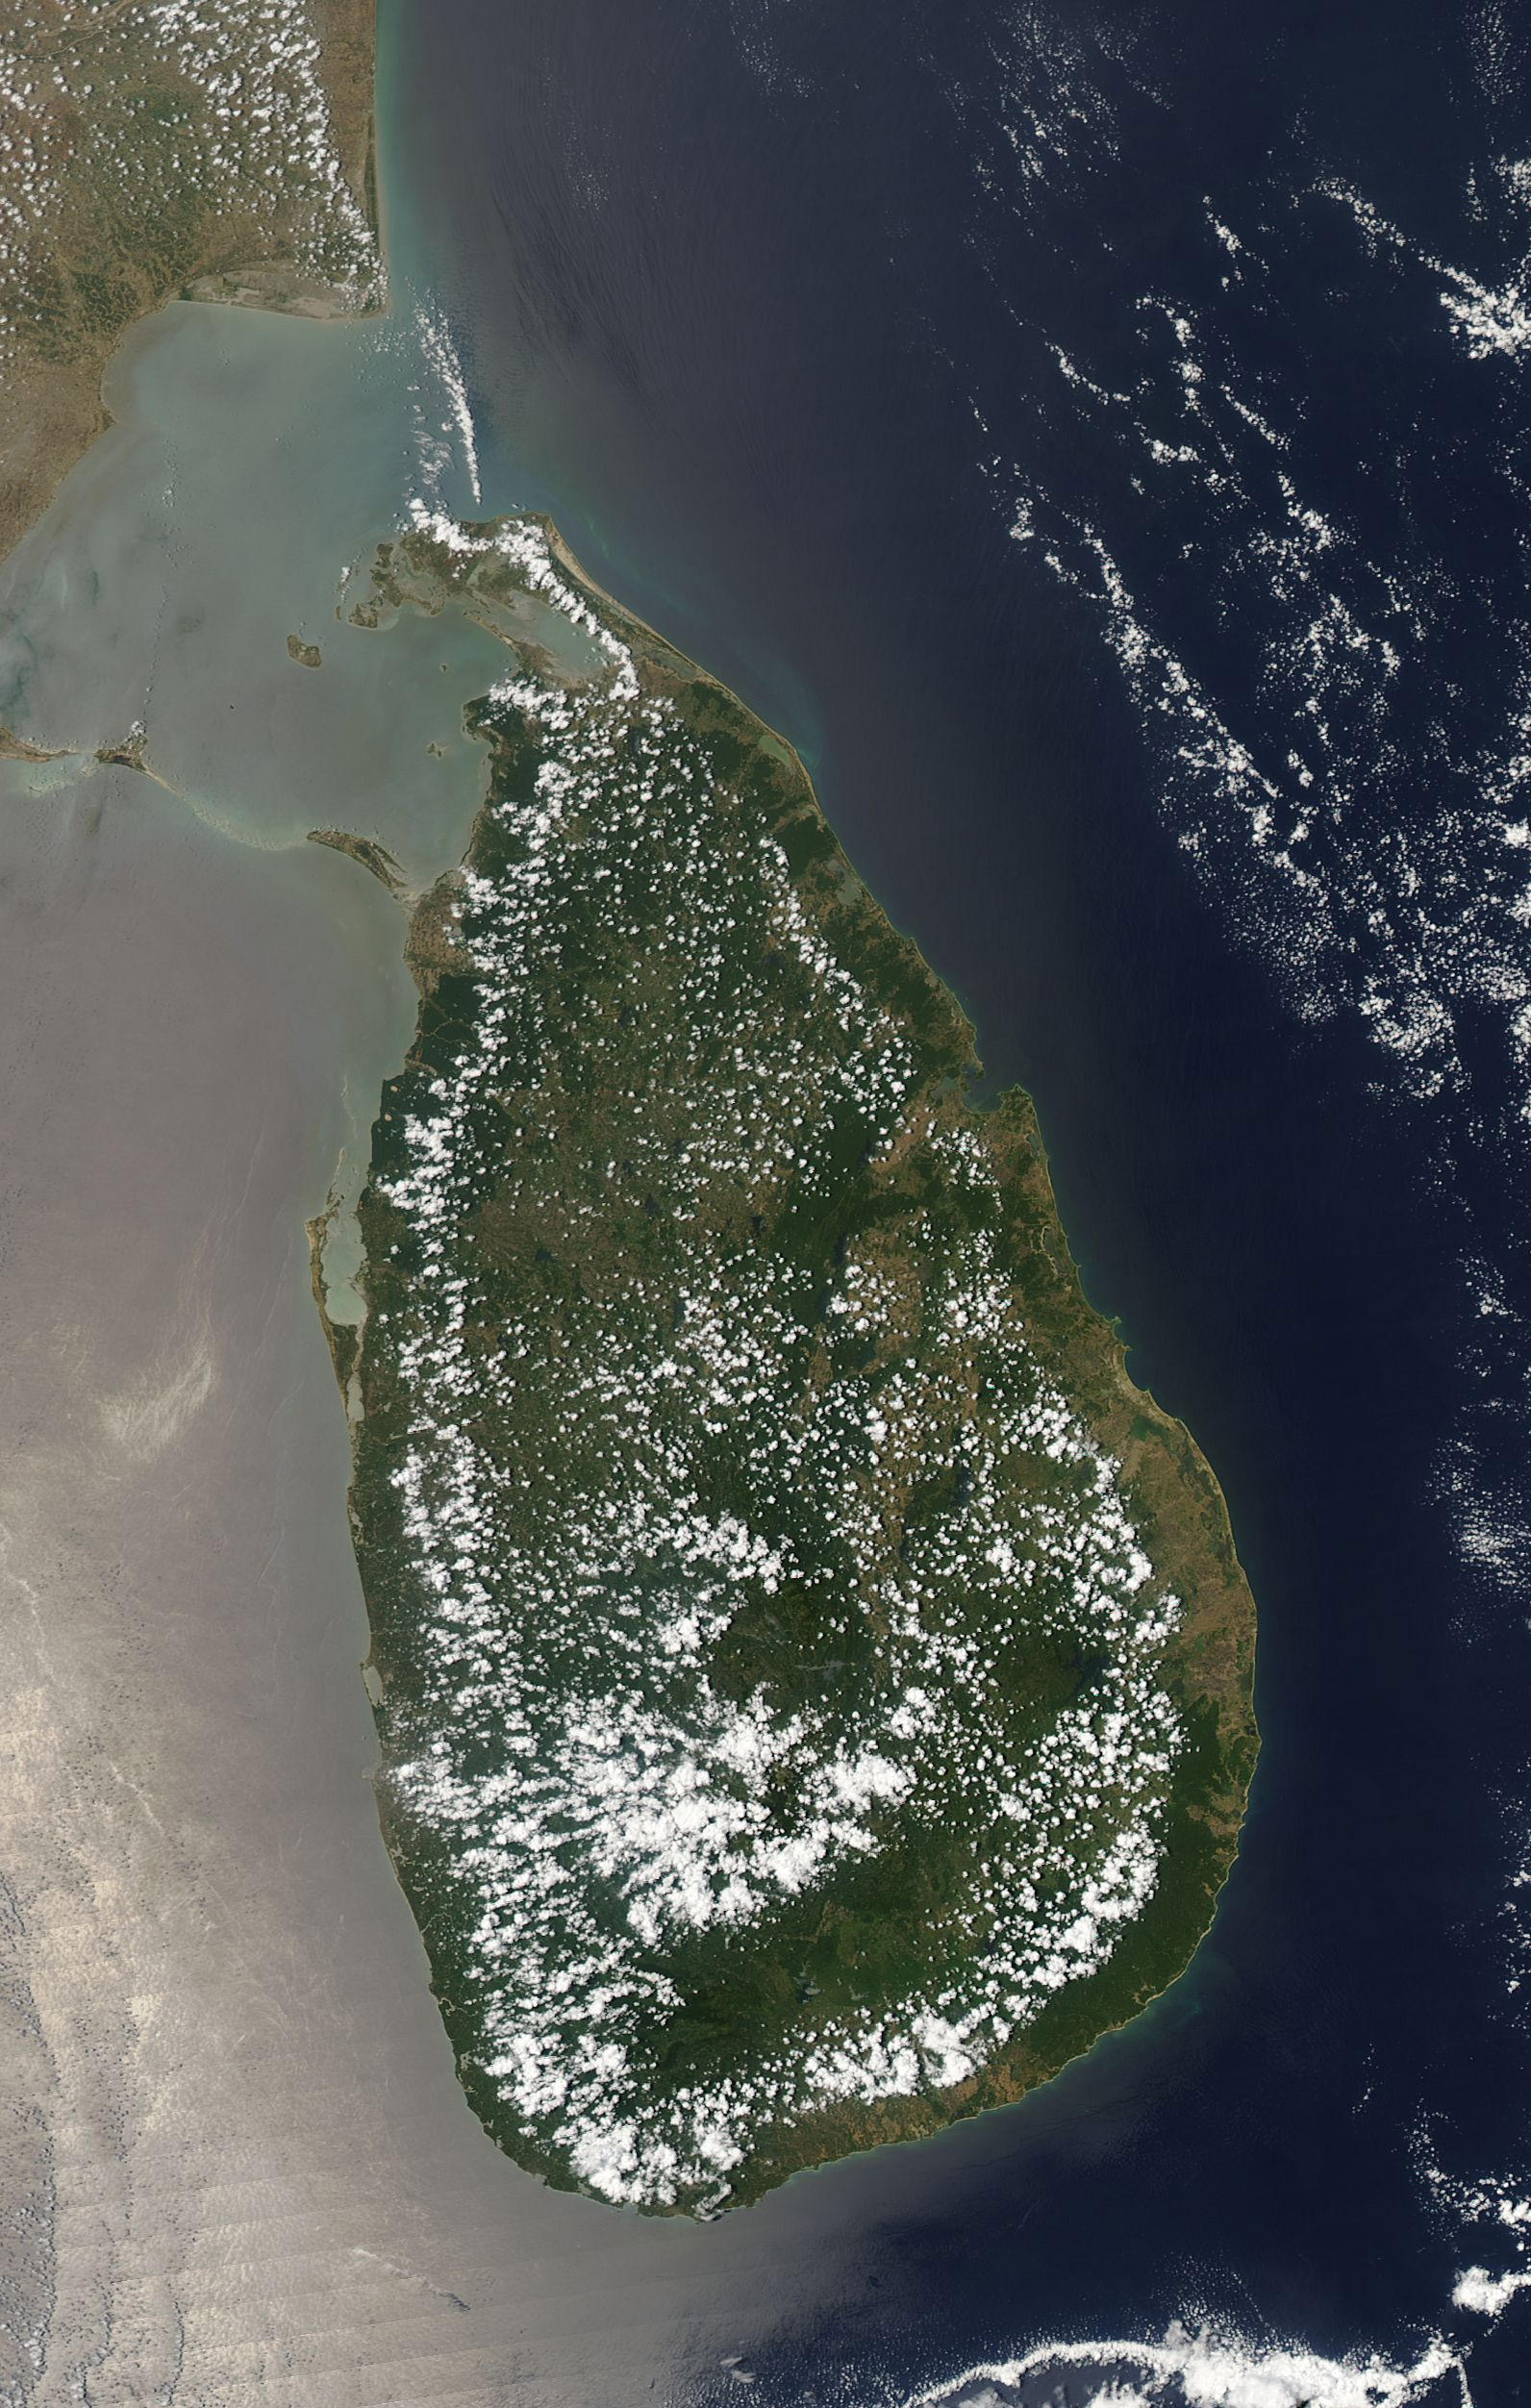 Fair Weather Clouds Sri Lanka Image Of The Day